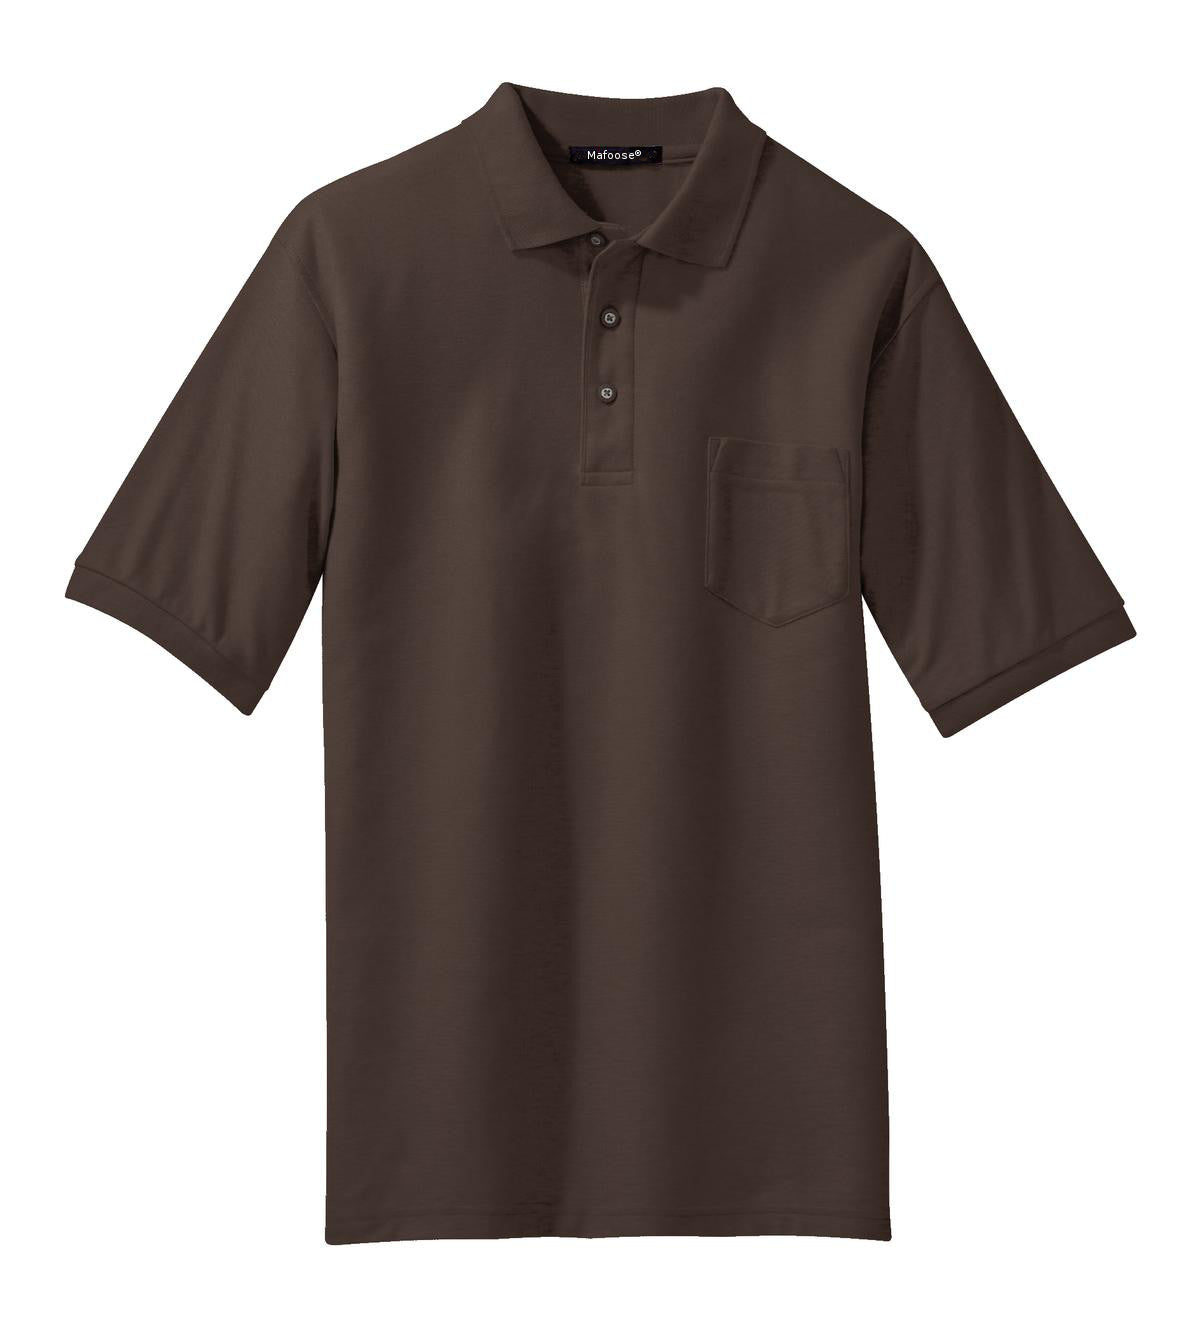 Mafoose Men's Silk Touch Polo with Pocket Coffee Bean-Front